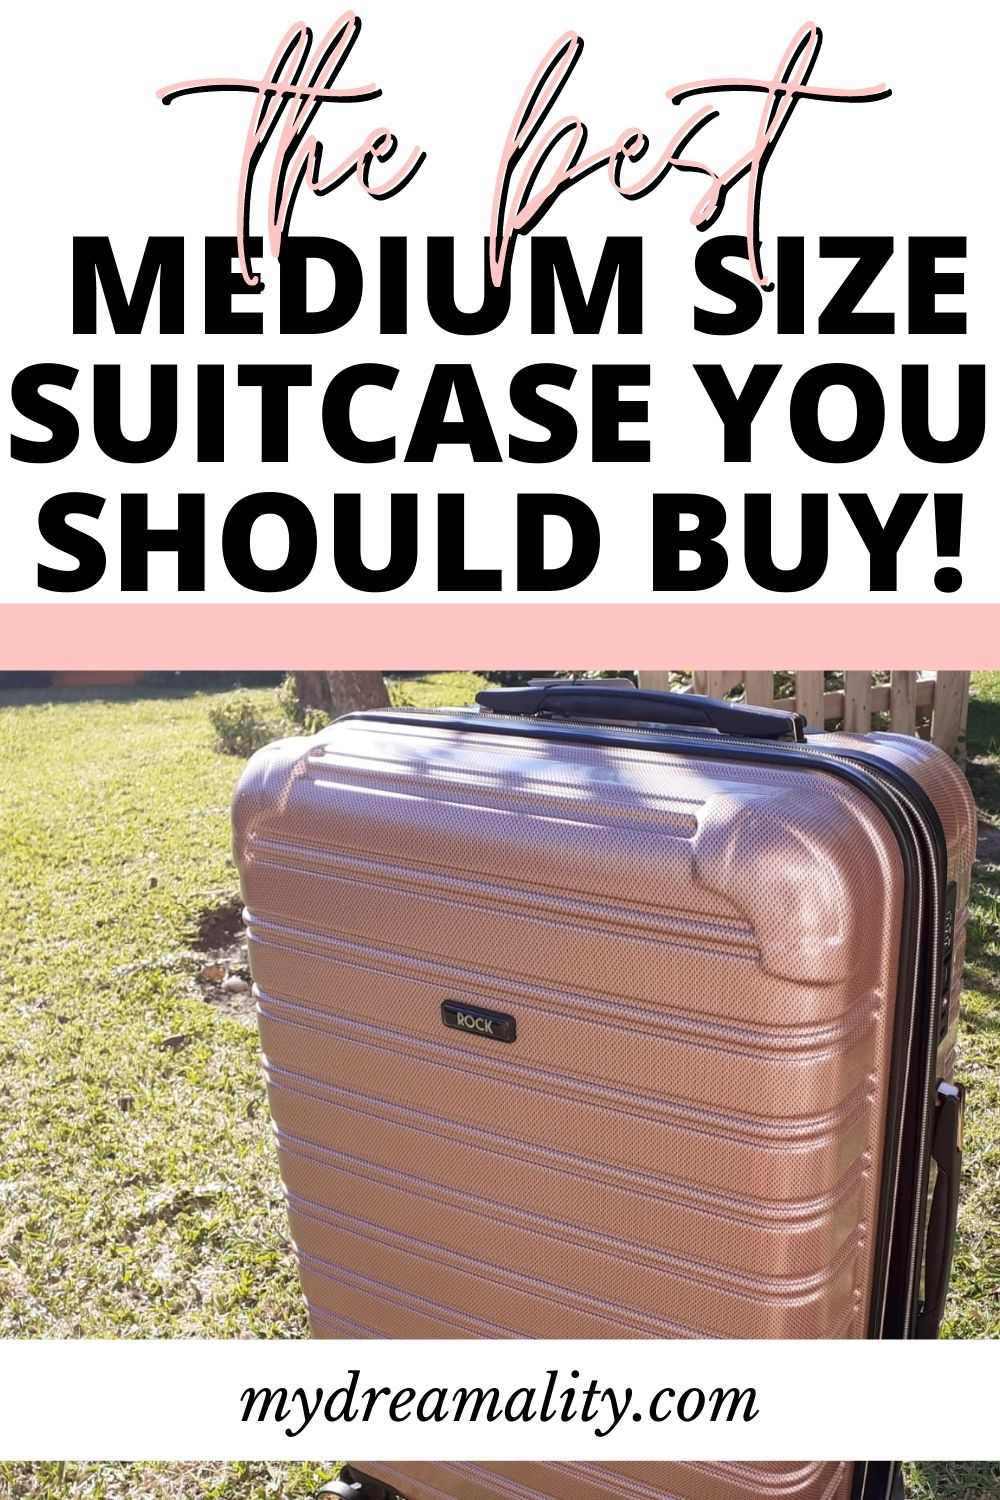 The best medium size suitcase for you - Rock Luggage review